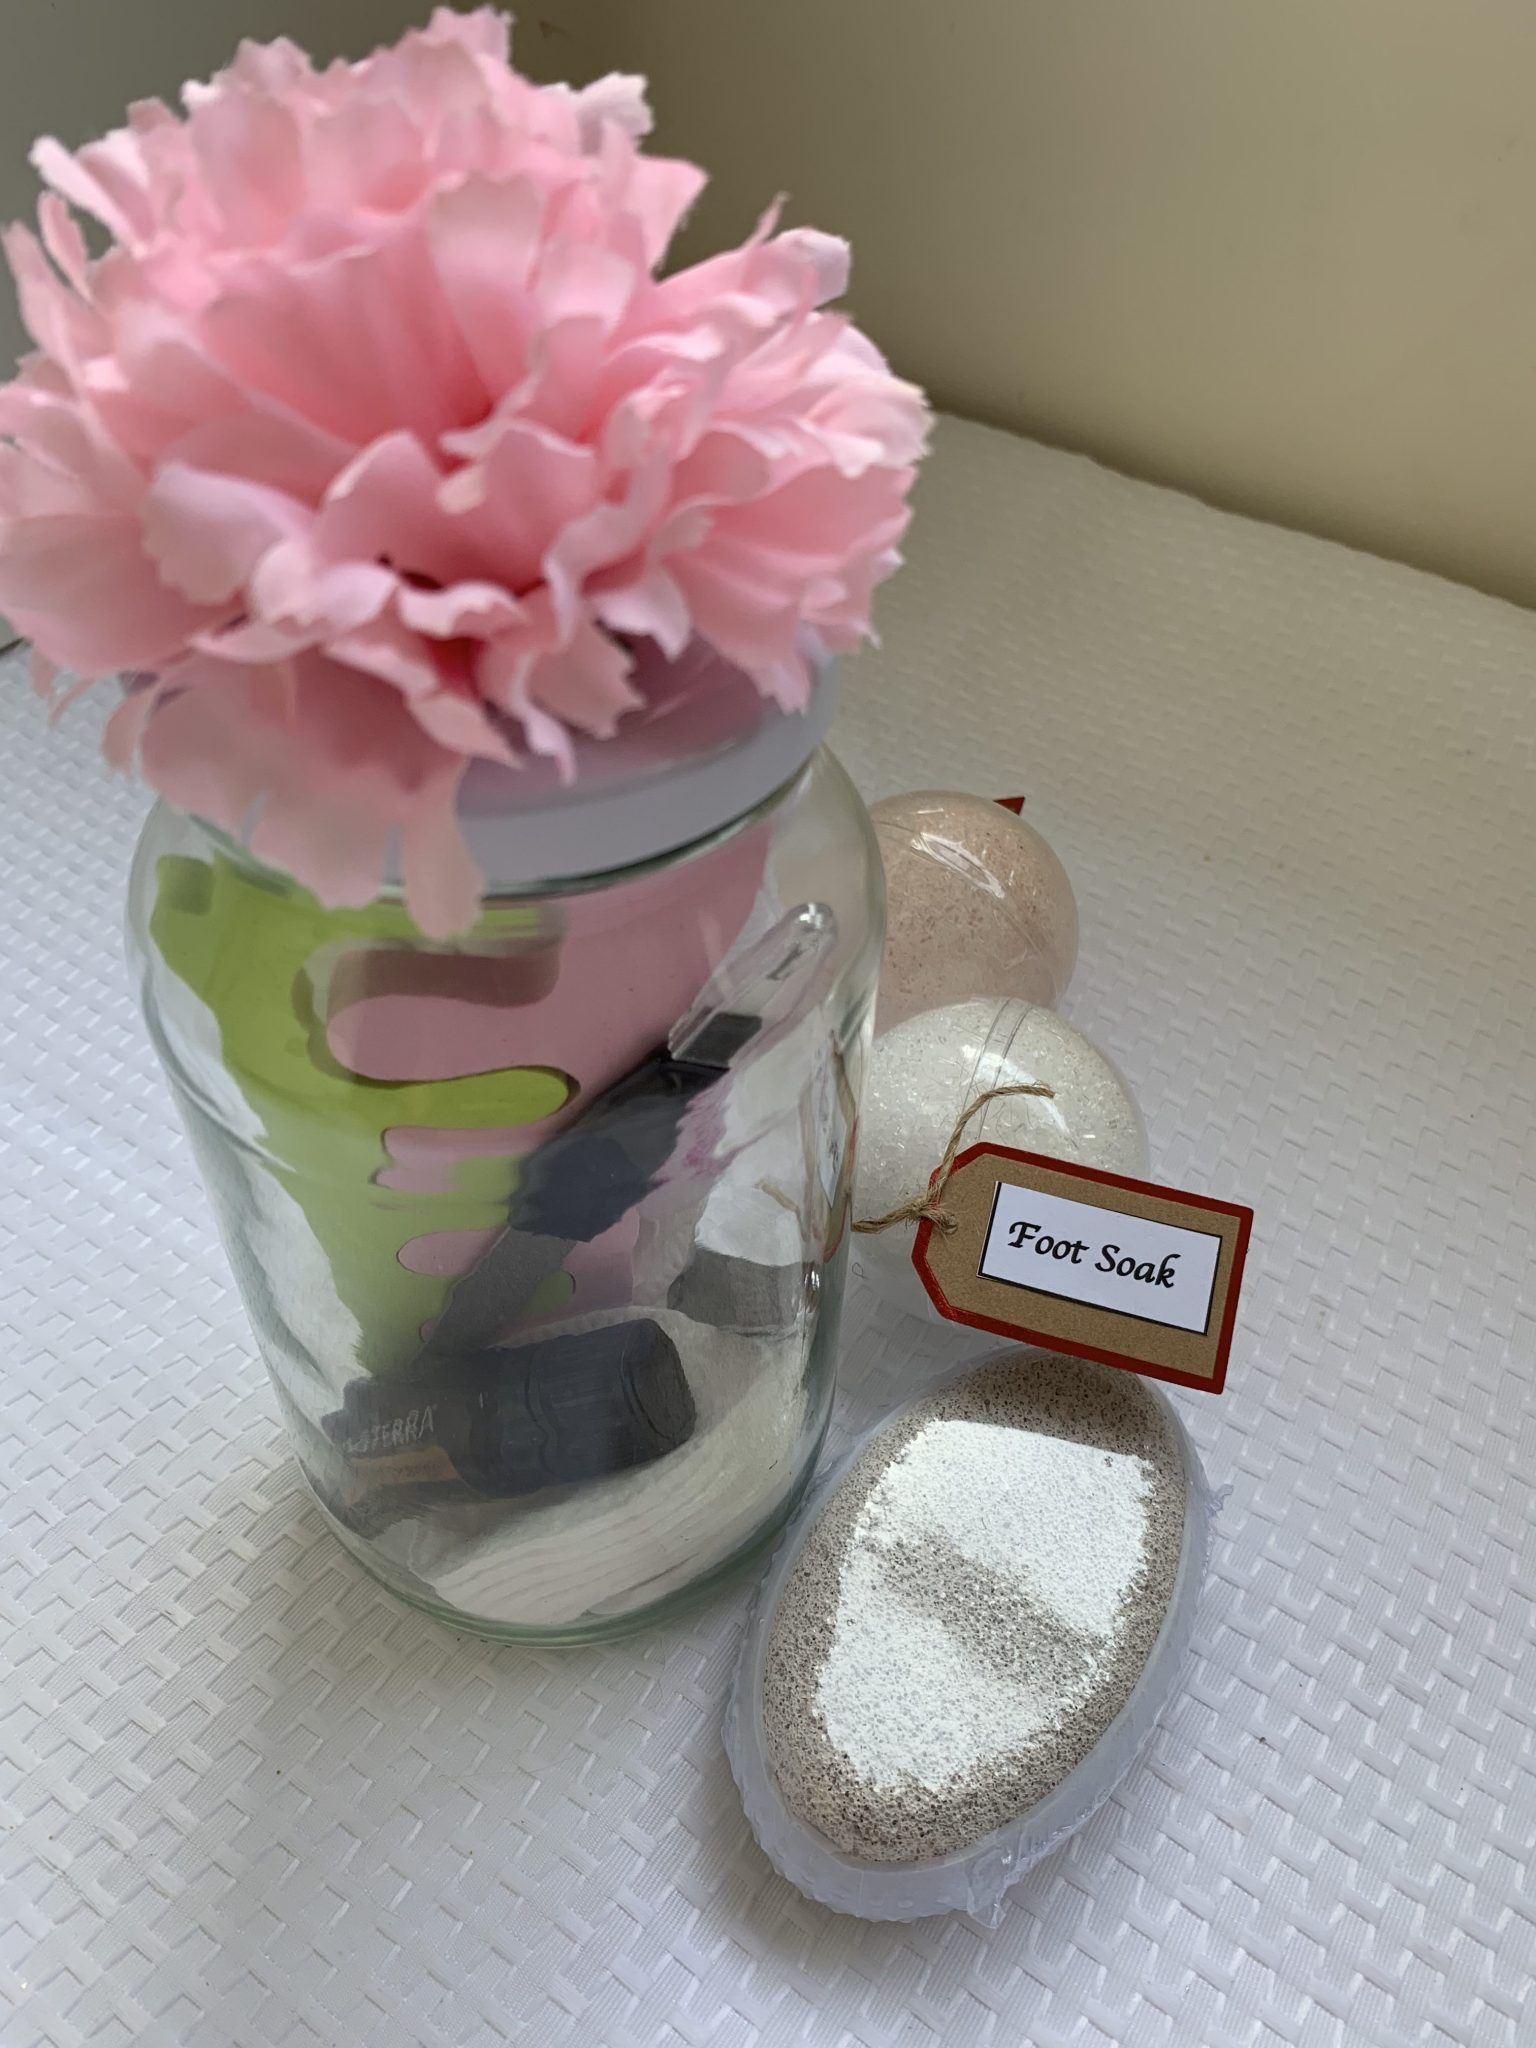 doTERRA Foot Pamper Gift